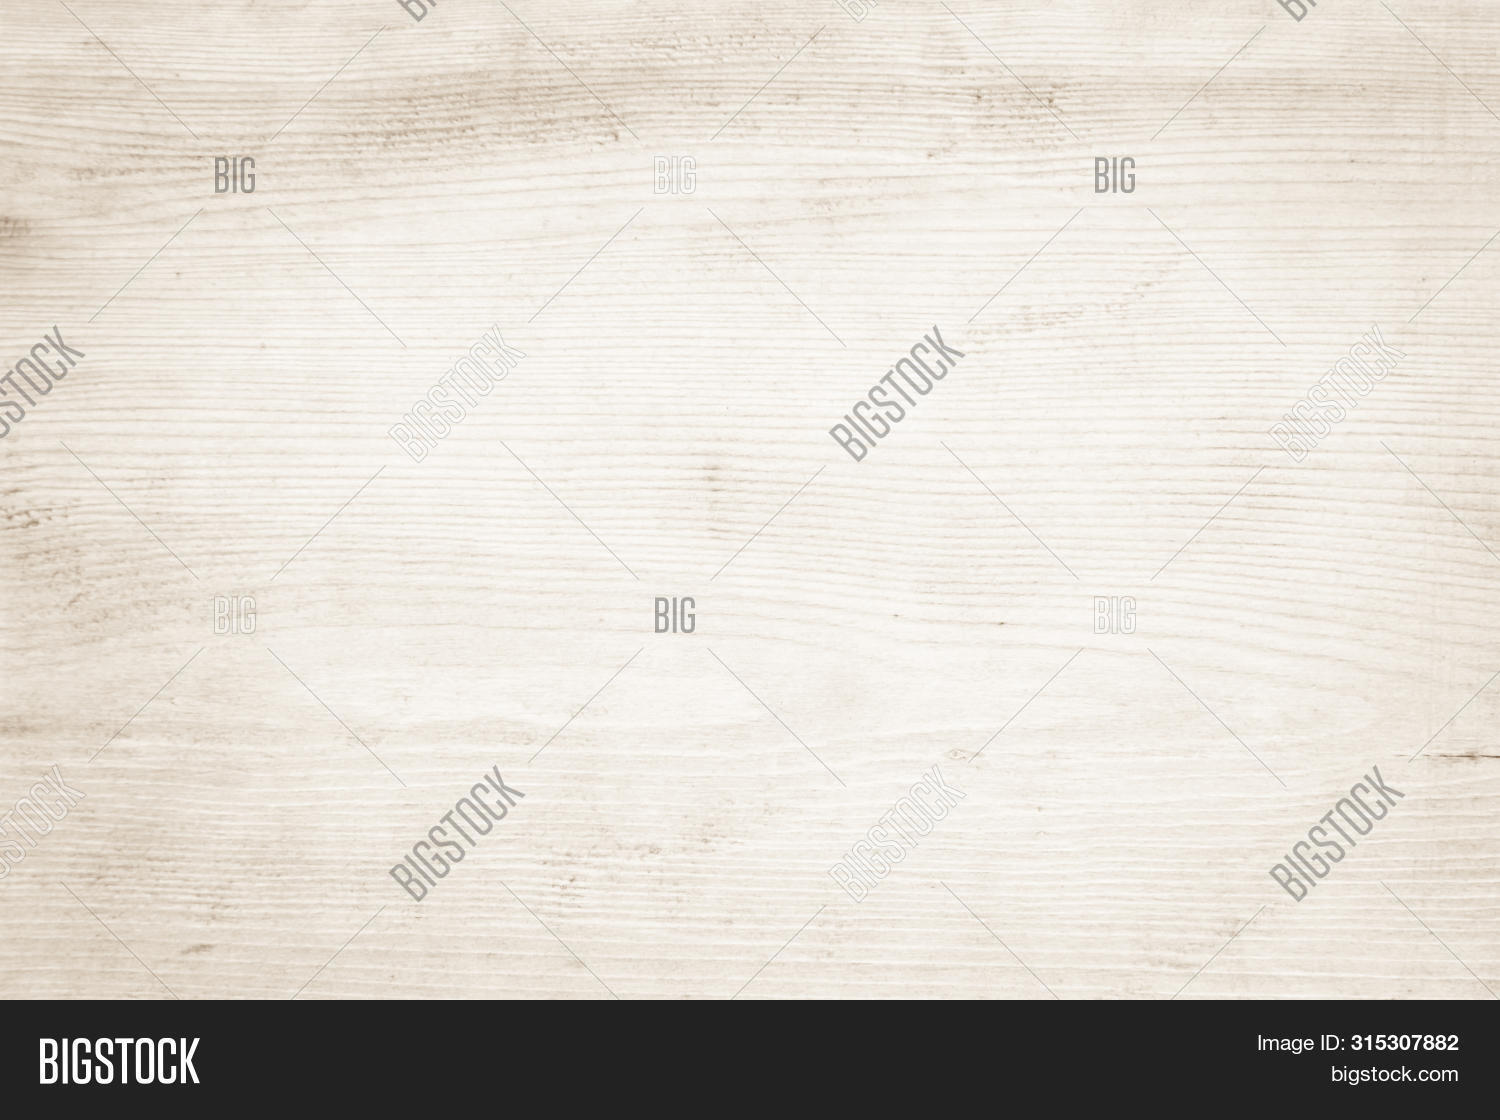 abstract,aged,backdrop,background,beautiful,beige,blank,board,canvas,closeup,color,cream,decor,decoration,decorative,design,desk,door,floor,frame,furniture,ground,grunge,hardwood,interior,laminate,light,line,material,nature,oak,old,parchment,parquet,plywood,rough,rustic,sample,seamless,structure,surface,table,texture,timber,vintage,wall,weathered,white,wood,wooden